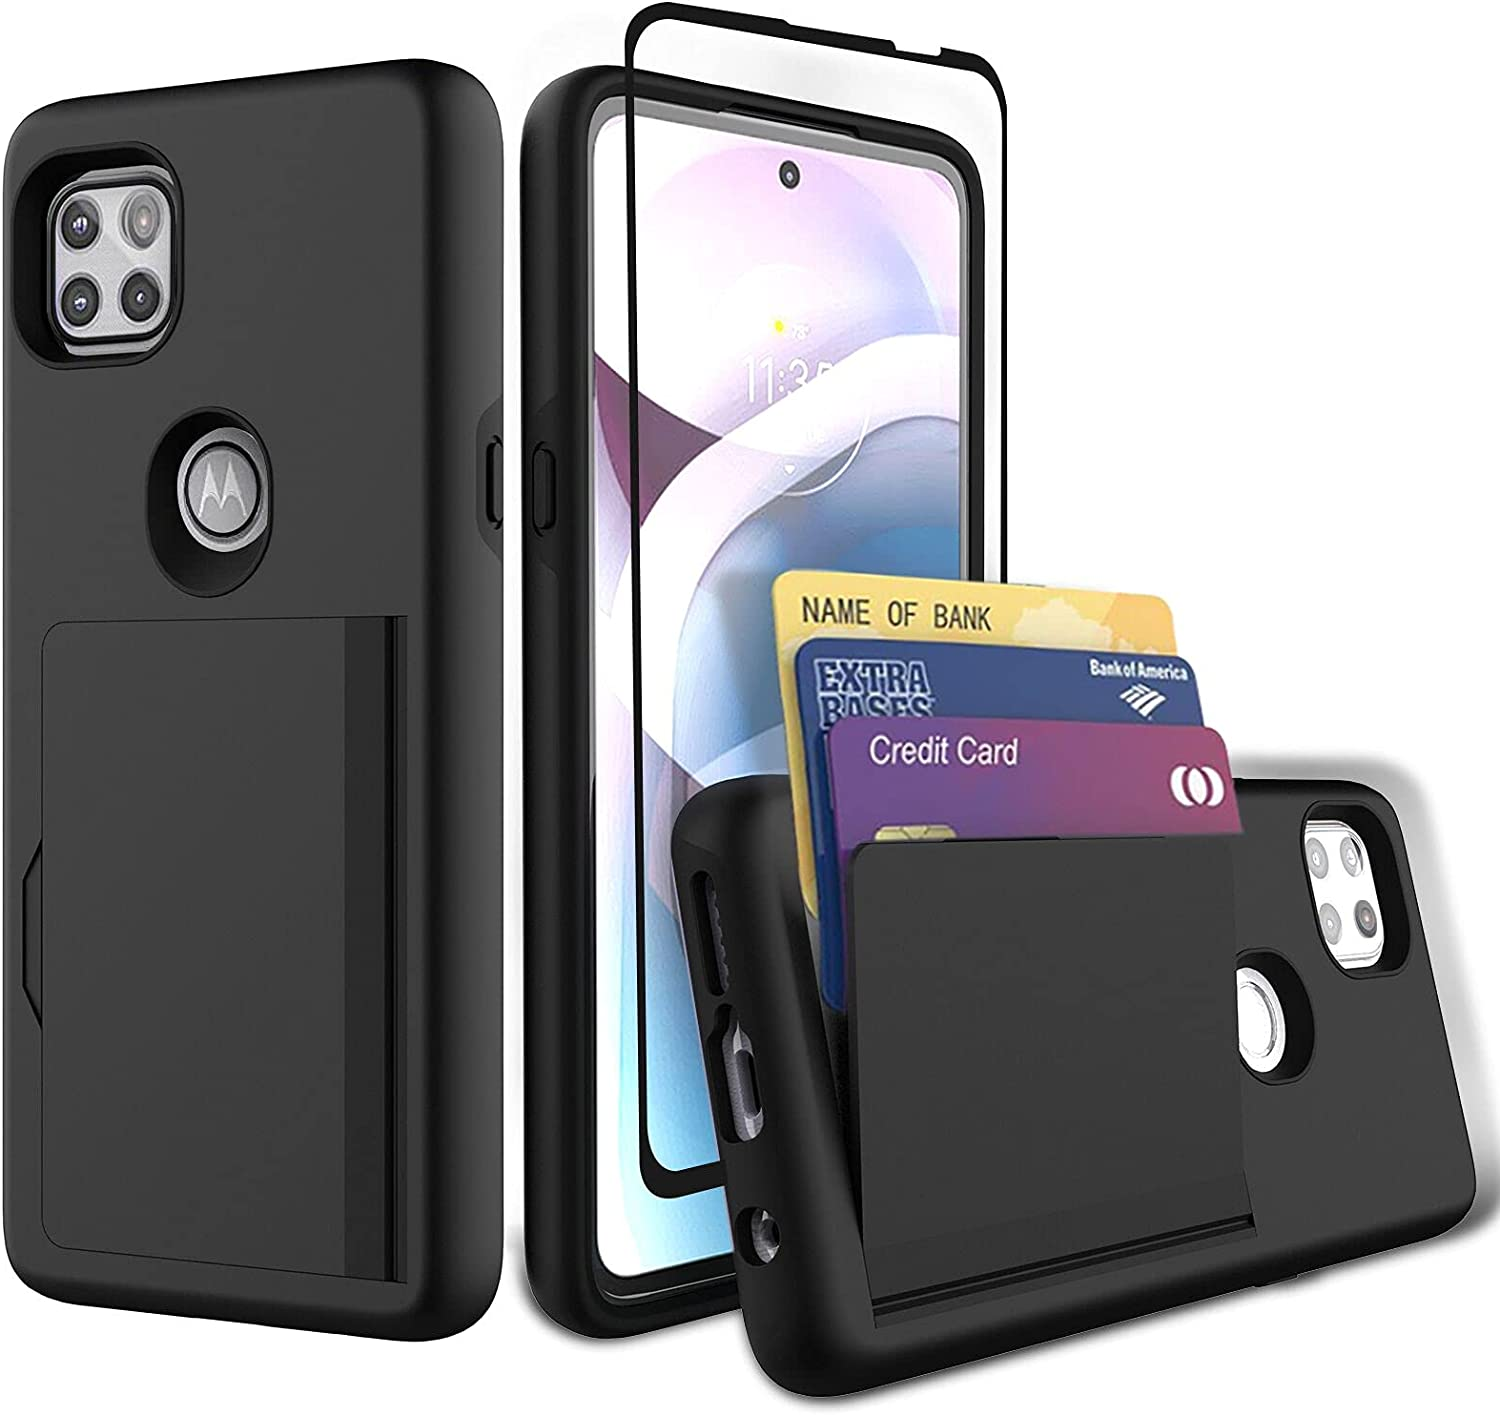 Sofiso for Moto One 5G Ace Case, Moto G 5G Case with Tempered Glass Screen Protector, Dual Layer Smooth Hard Back Cover Wallet Pocket Credit Card ID Protective Case for Motorola One 5G Ace -Black